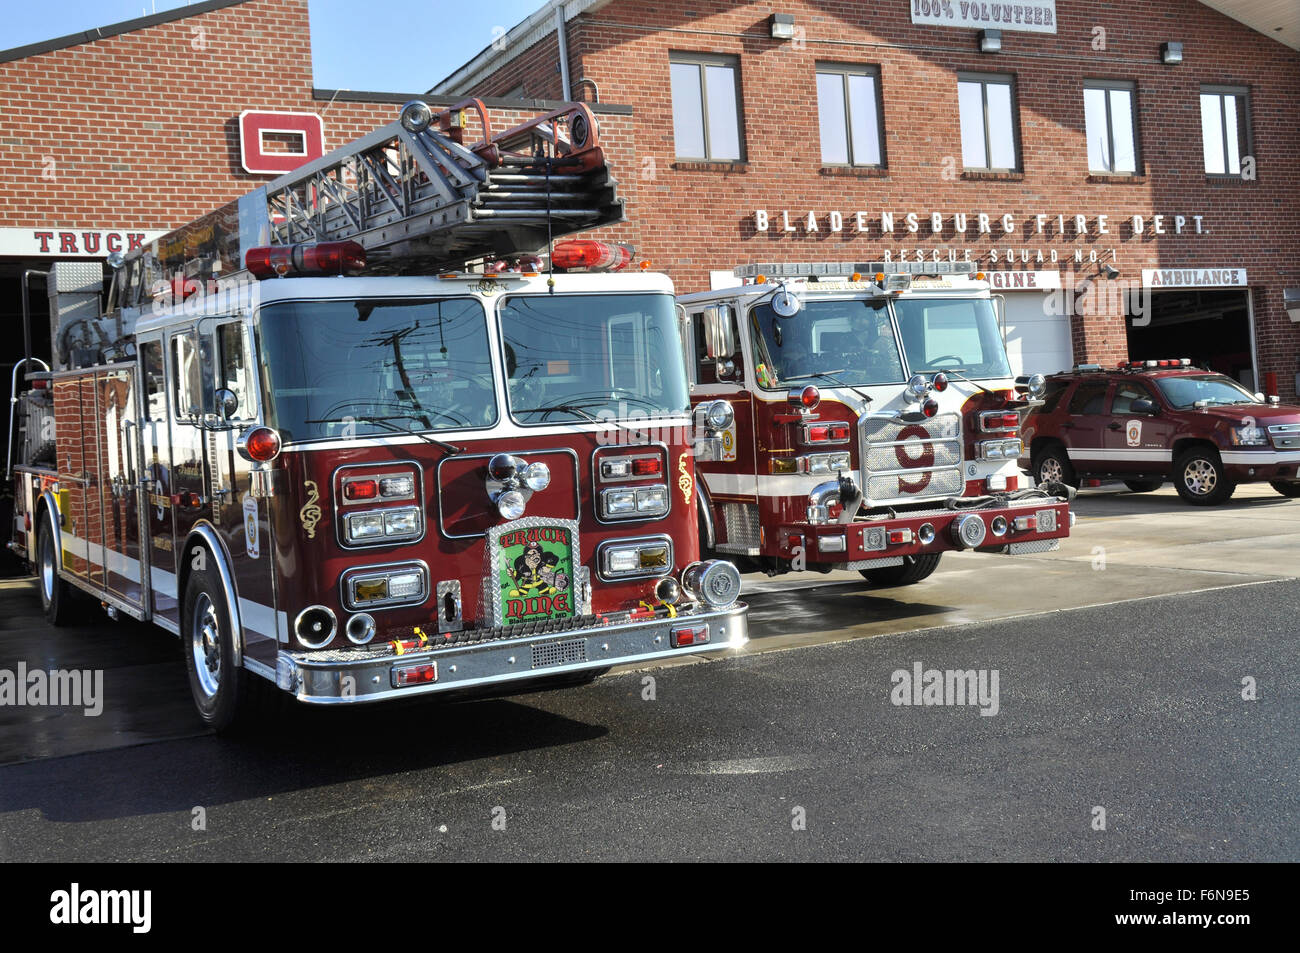 The Bladensburg Volunteer Fire Department in Bladensburg, Maryland - Stock Image